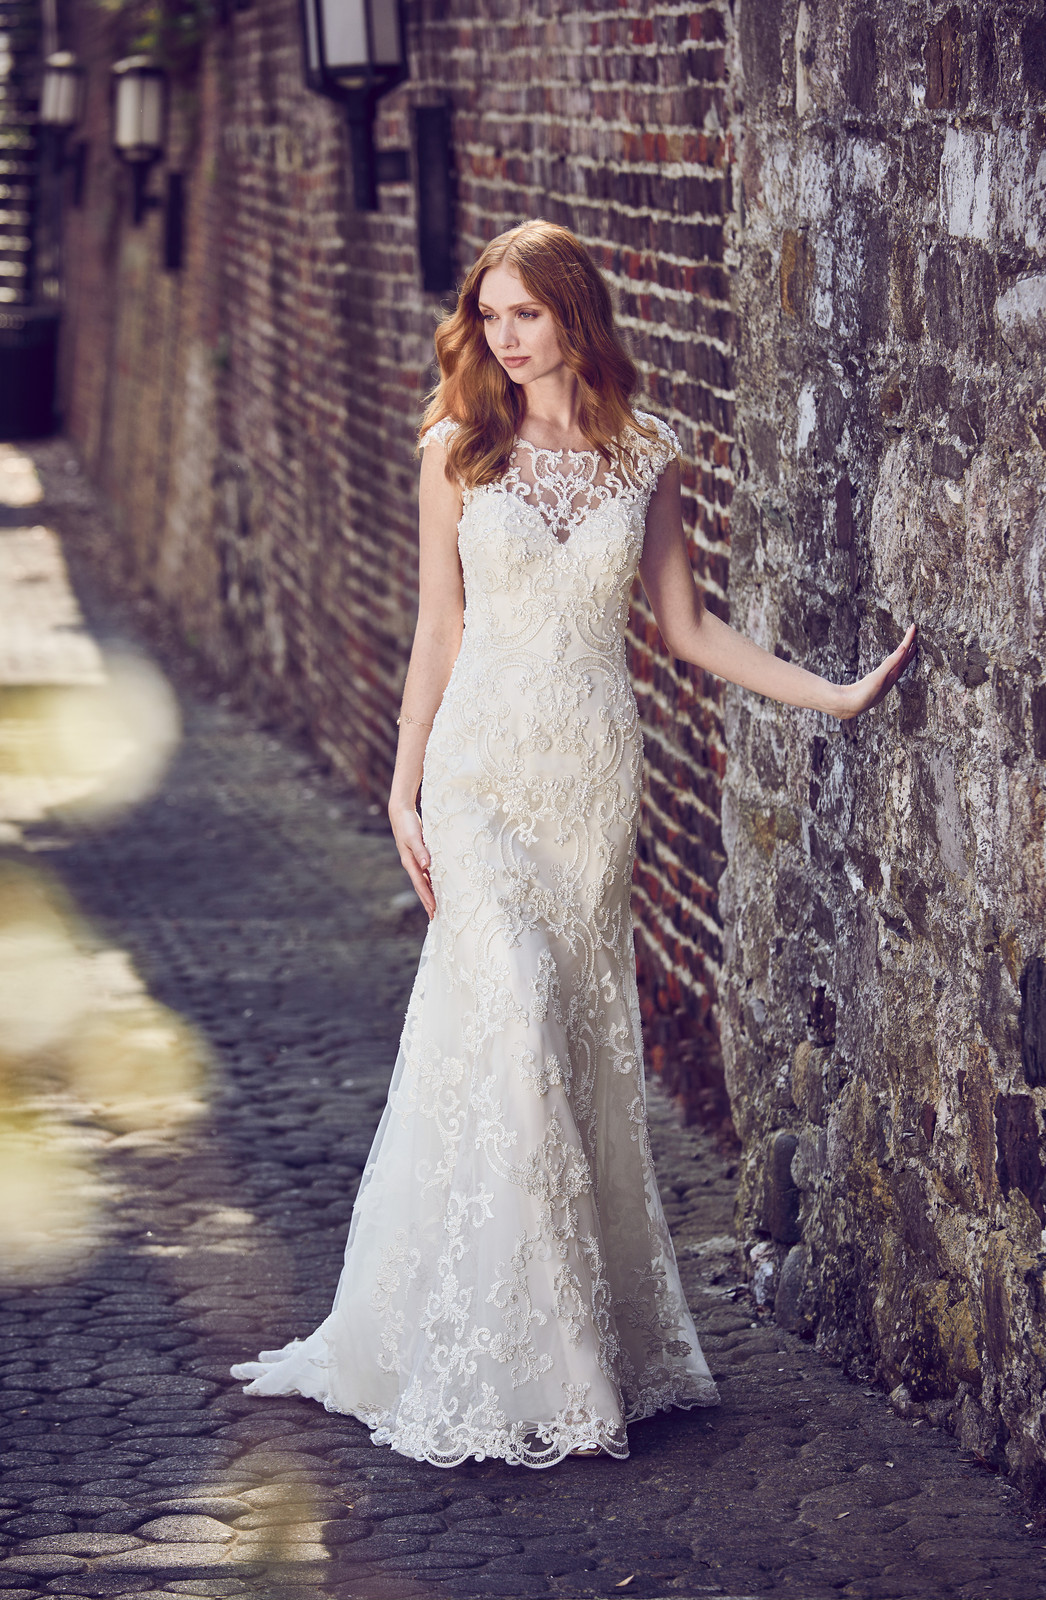 616dfd193ad This elegant fit-and-flare wedding dress features a tulle overlay of beaded  lace motifs